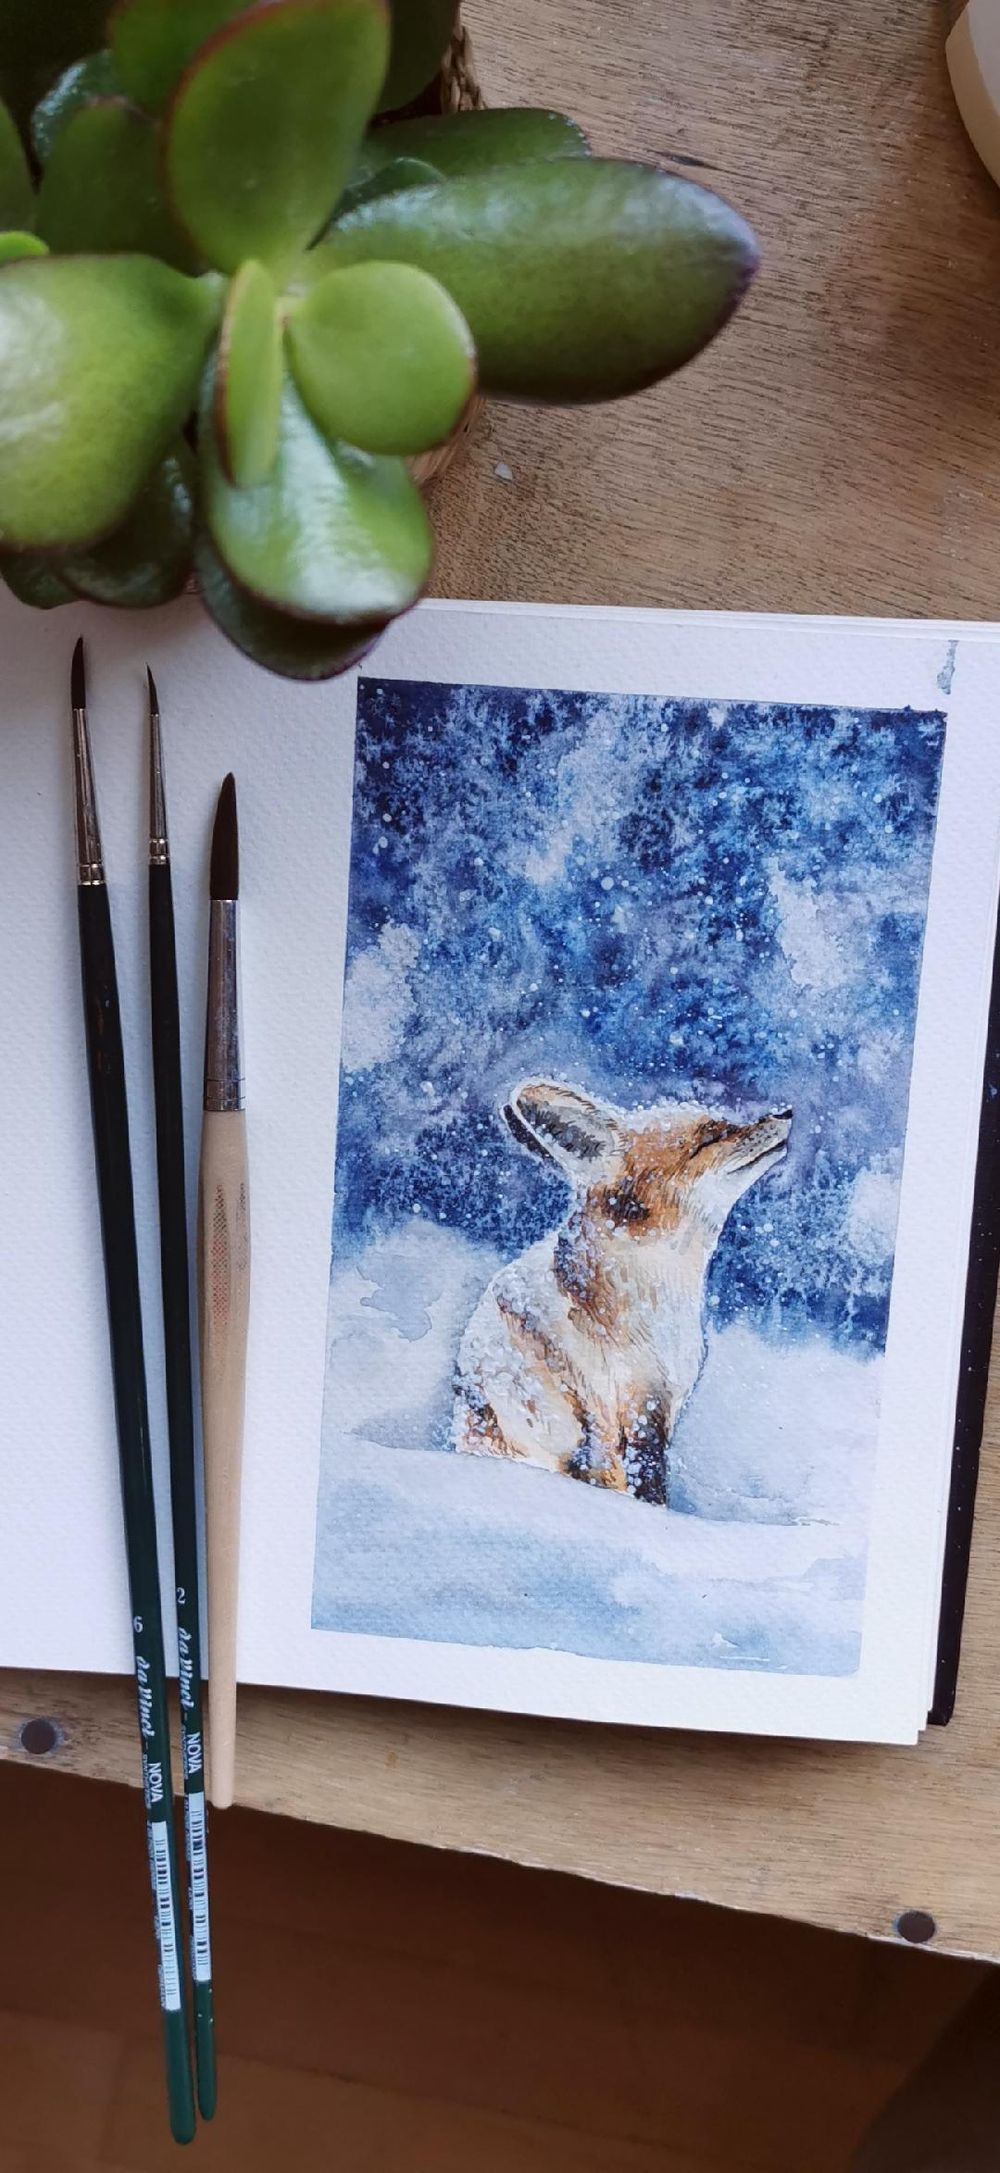 Snowy fox - image 1 - student project